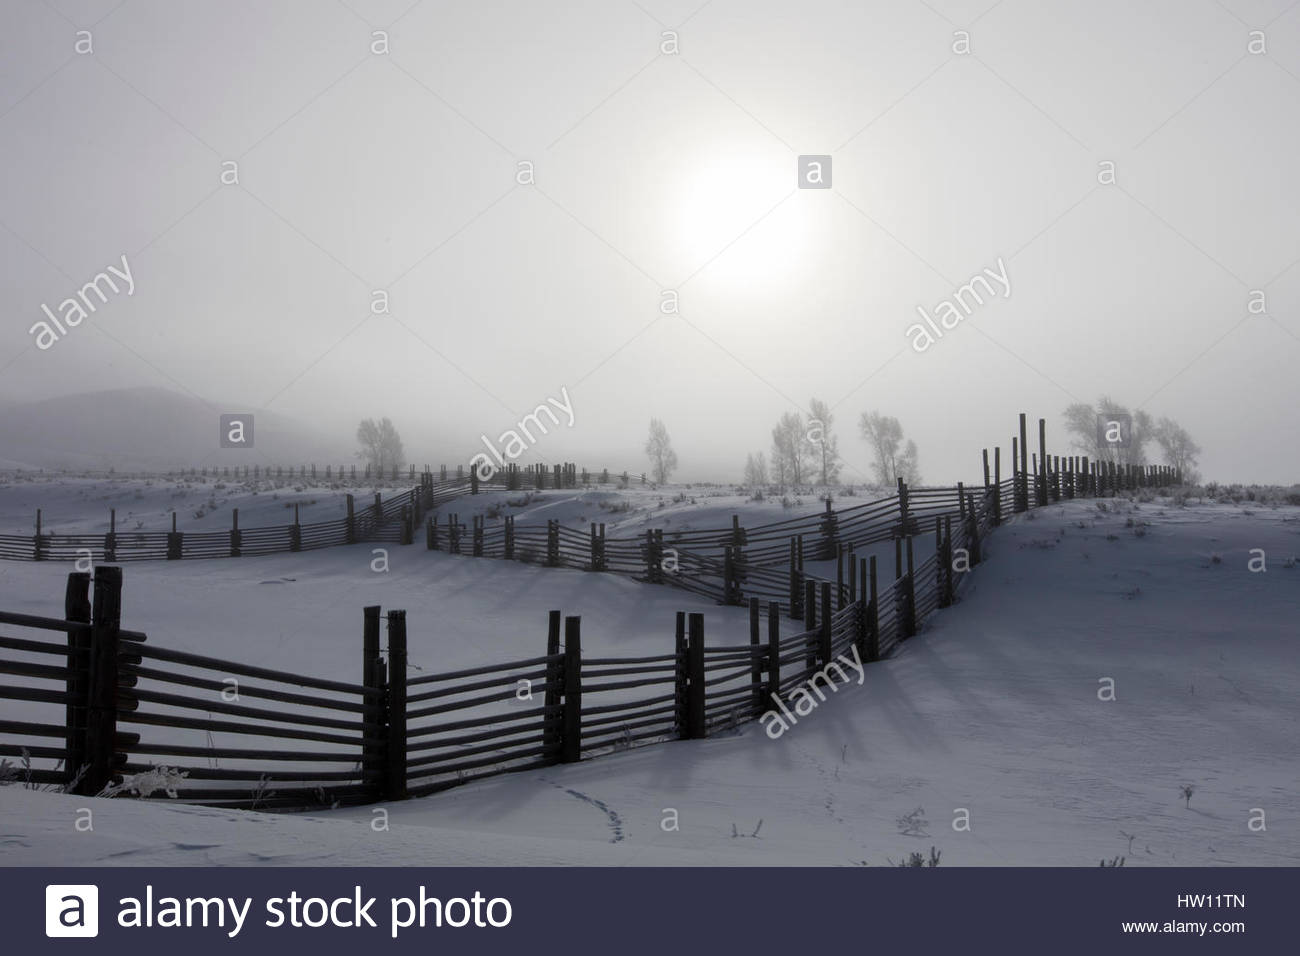 Wooden fences separate snow covered pastureland. - Stock Image